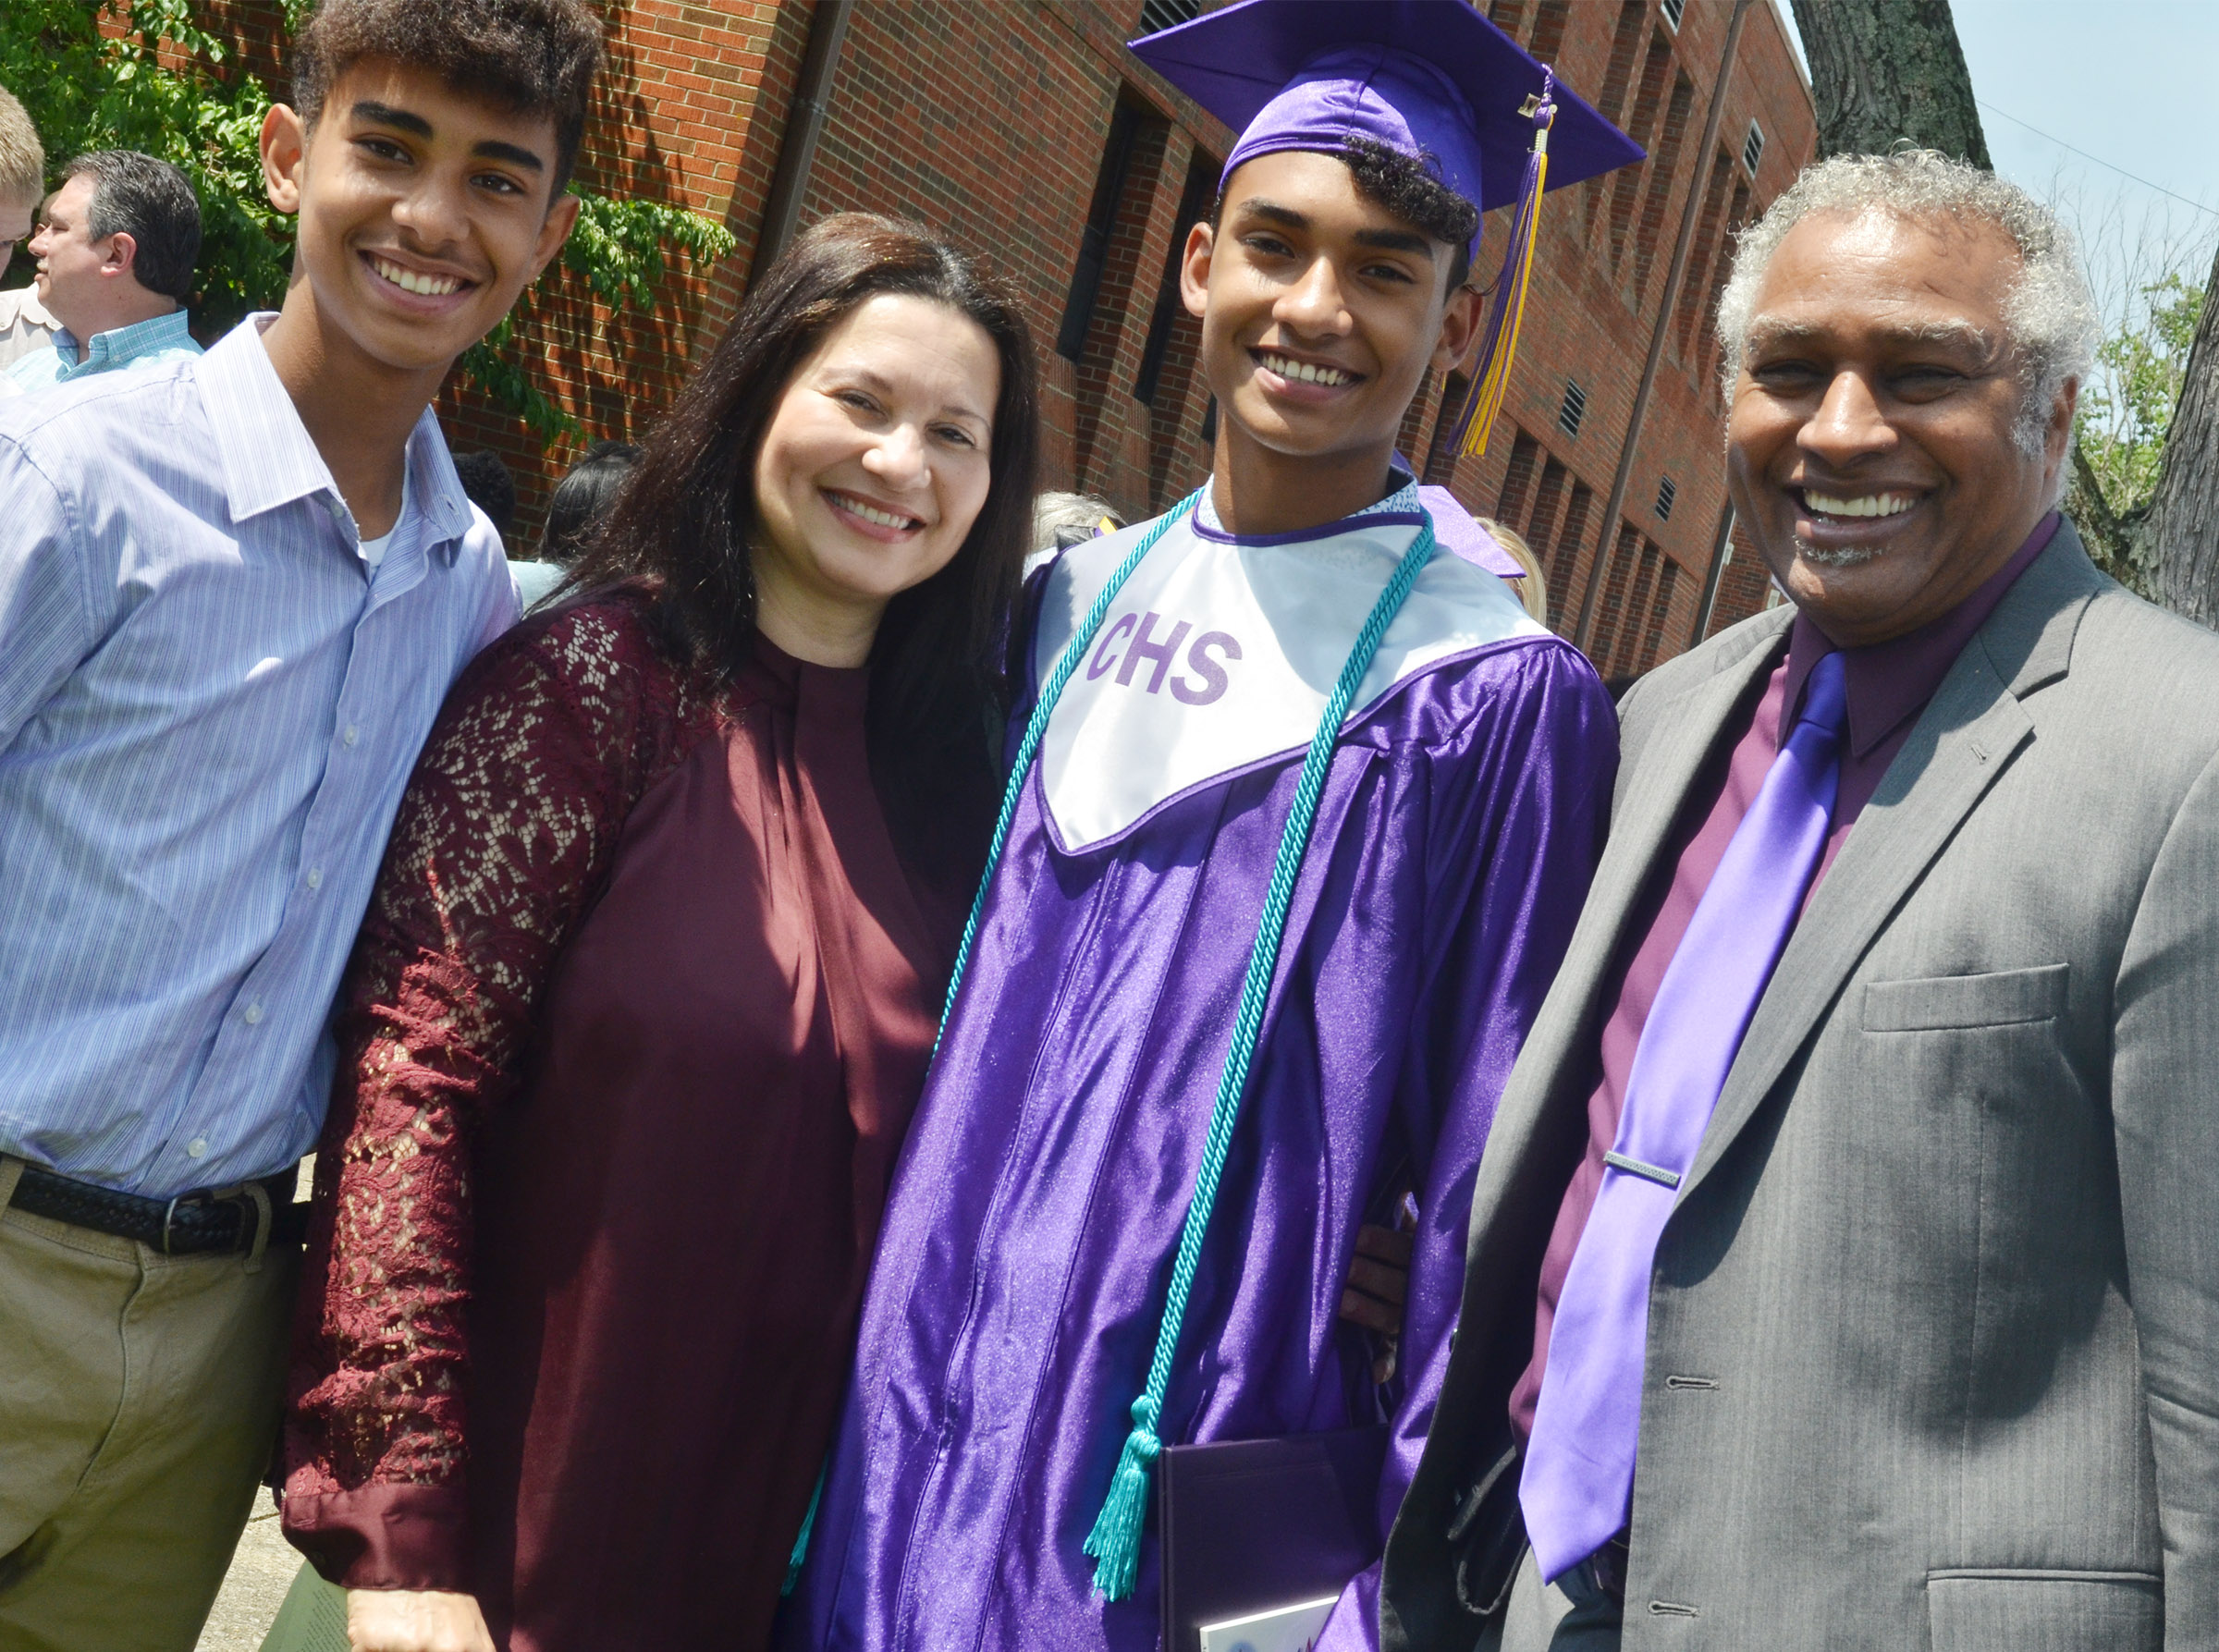 CHS graduate Daniel Silva poses for a photo with his parents, Dewayne and Dr. Carla Golightly, and his brother, David, a freshman at CHS.